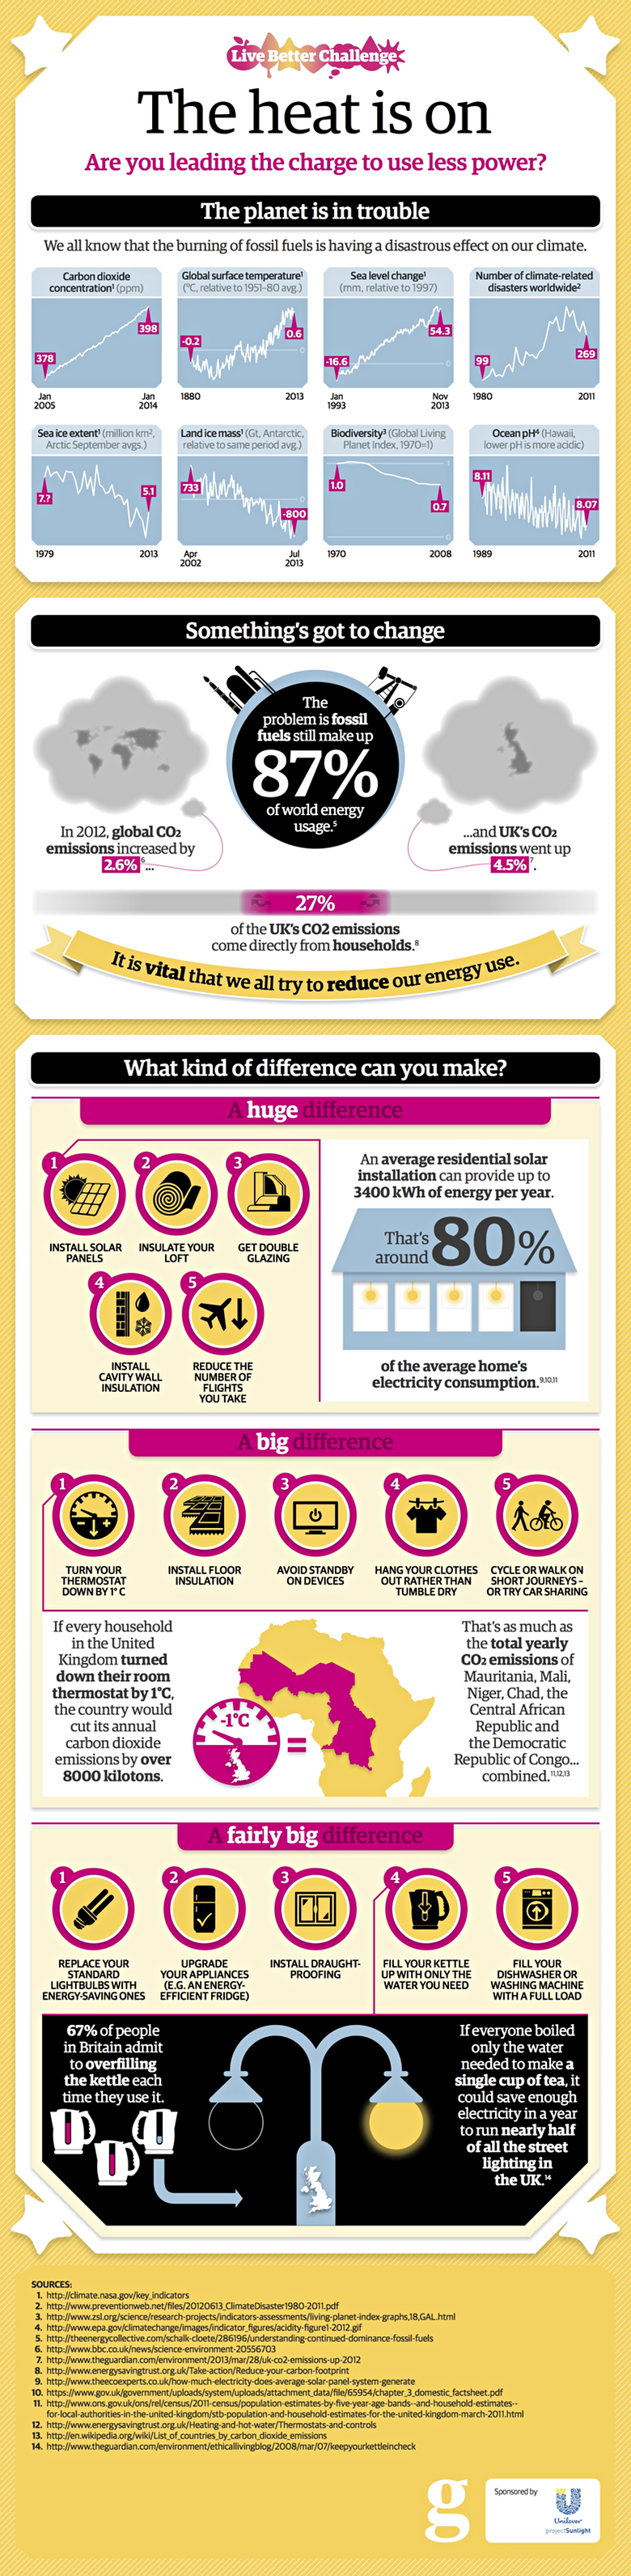 Reducing your energy use - infographic